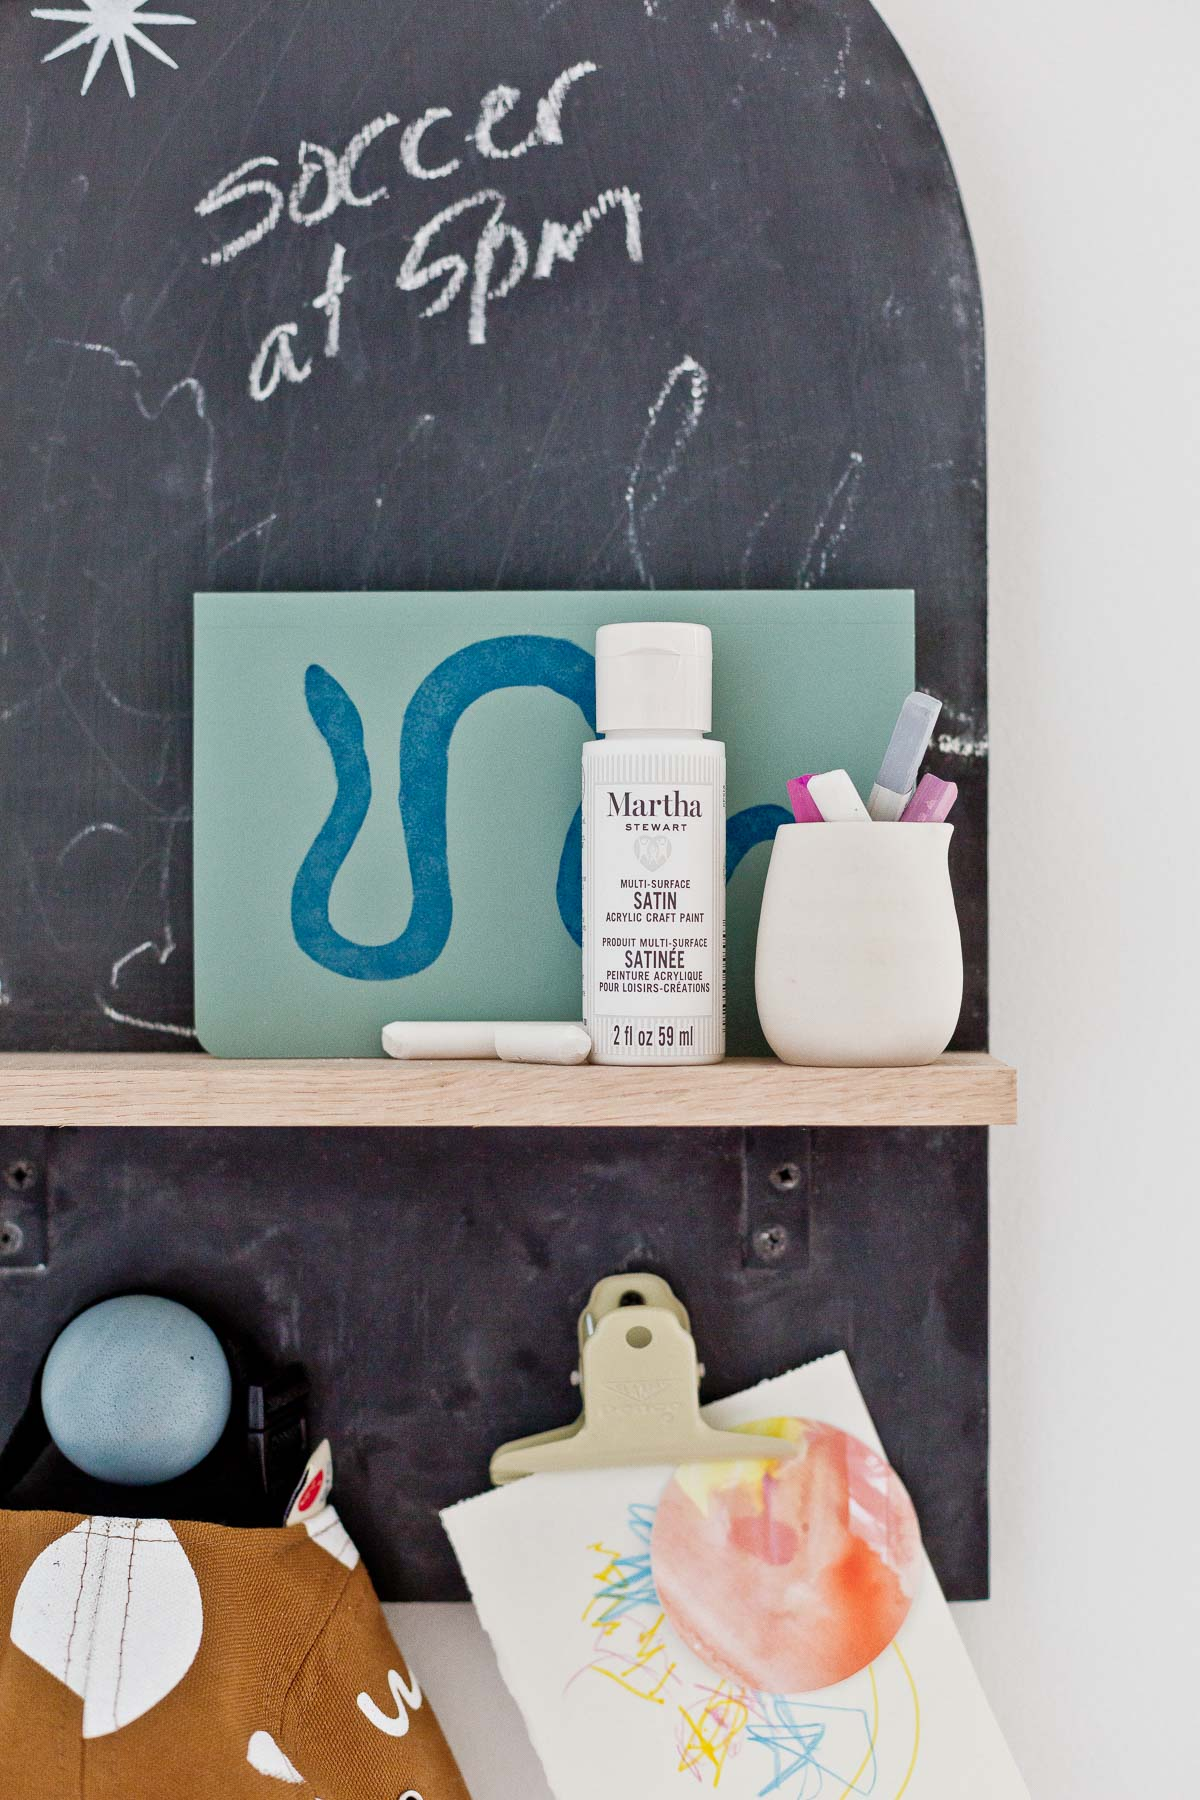 DIY Arch Wall Organizer! This back to school project is cool for kids and all, but it'd work just as well for adults. Don't you think? The arch shaped chalkboard and wood shelf are perfect for hallway or kitchen memos, etc. #diy #organization #backtoschool #kidscrafts #chalkboard #memoboard #wallorganizer #arch